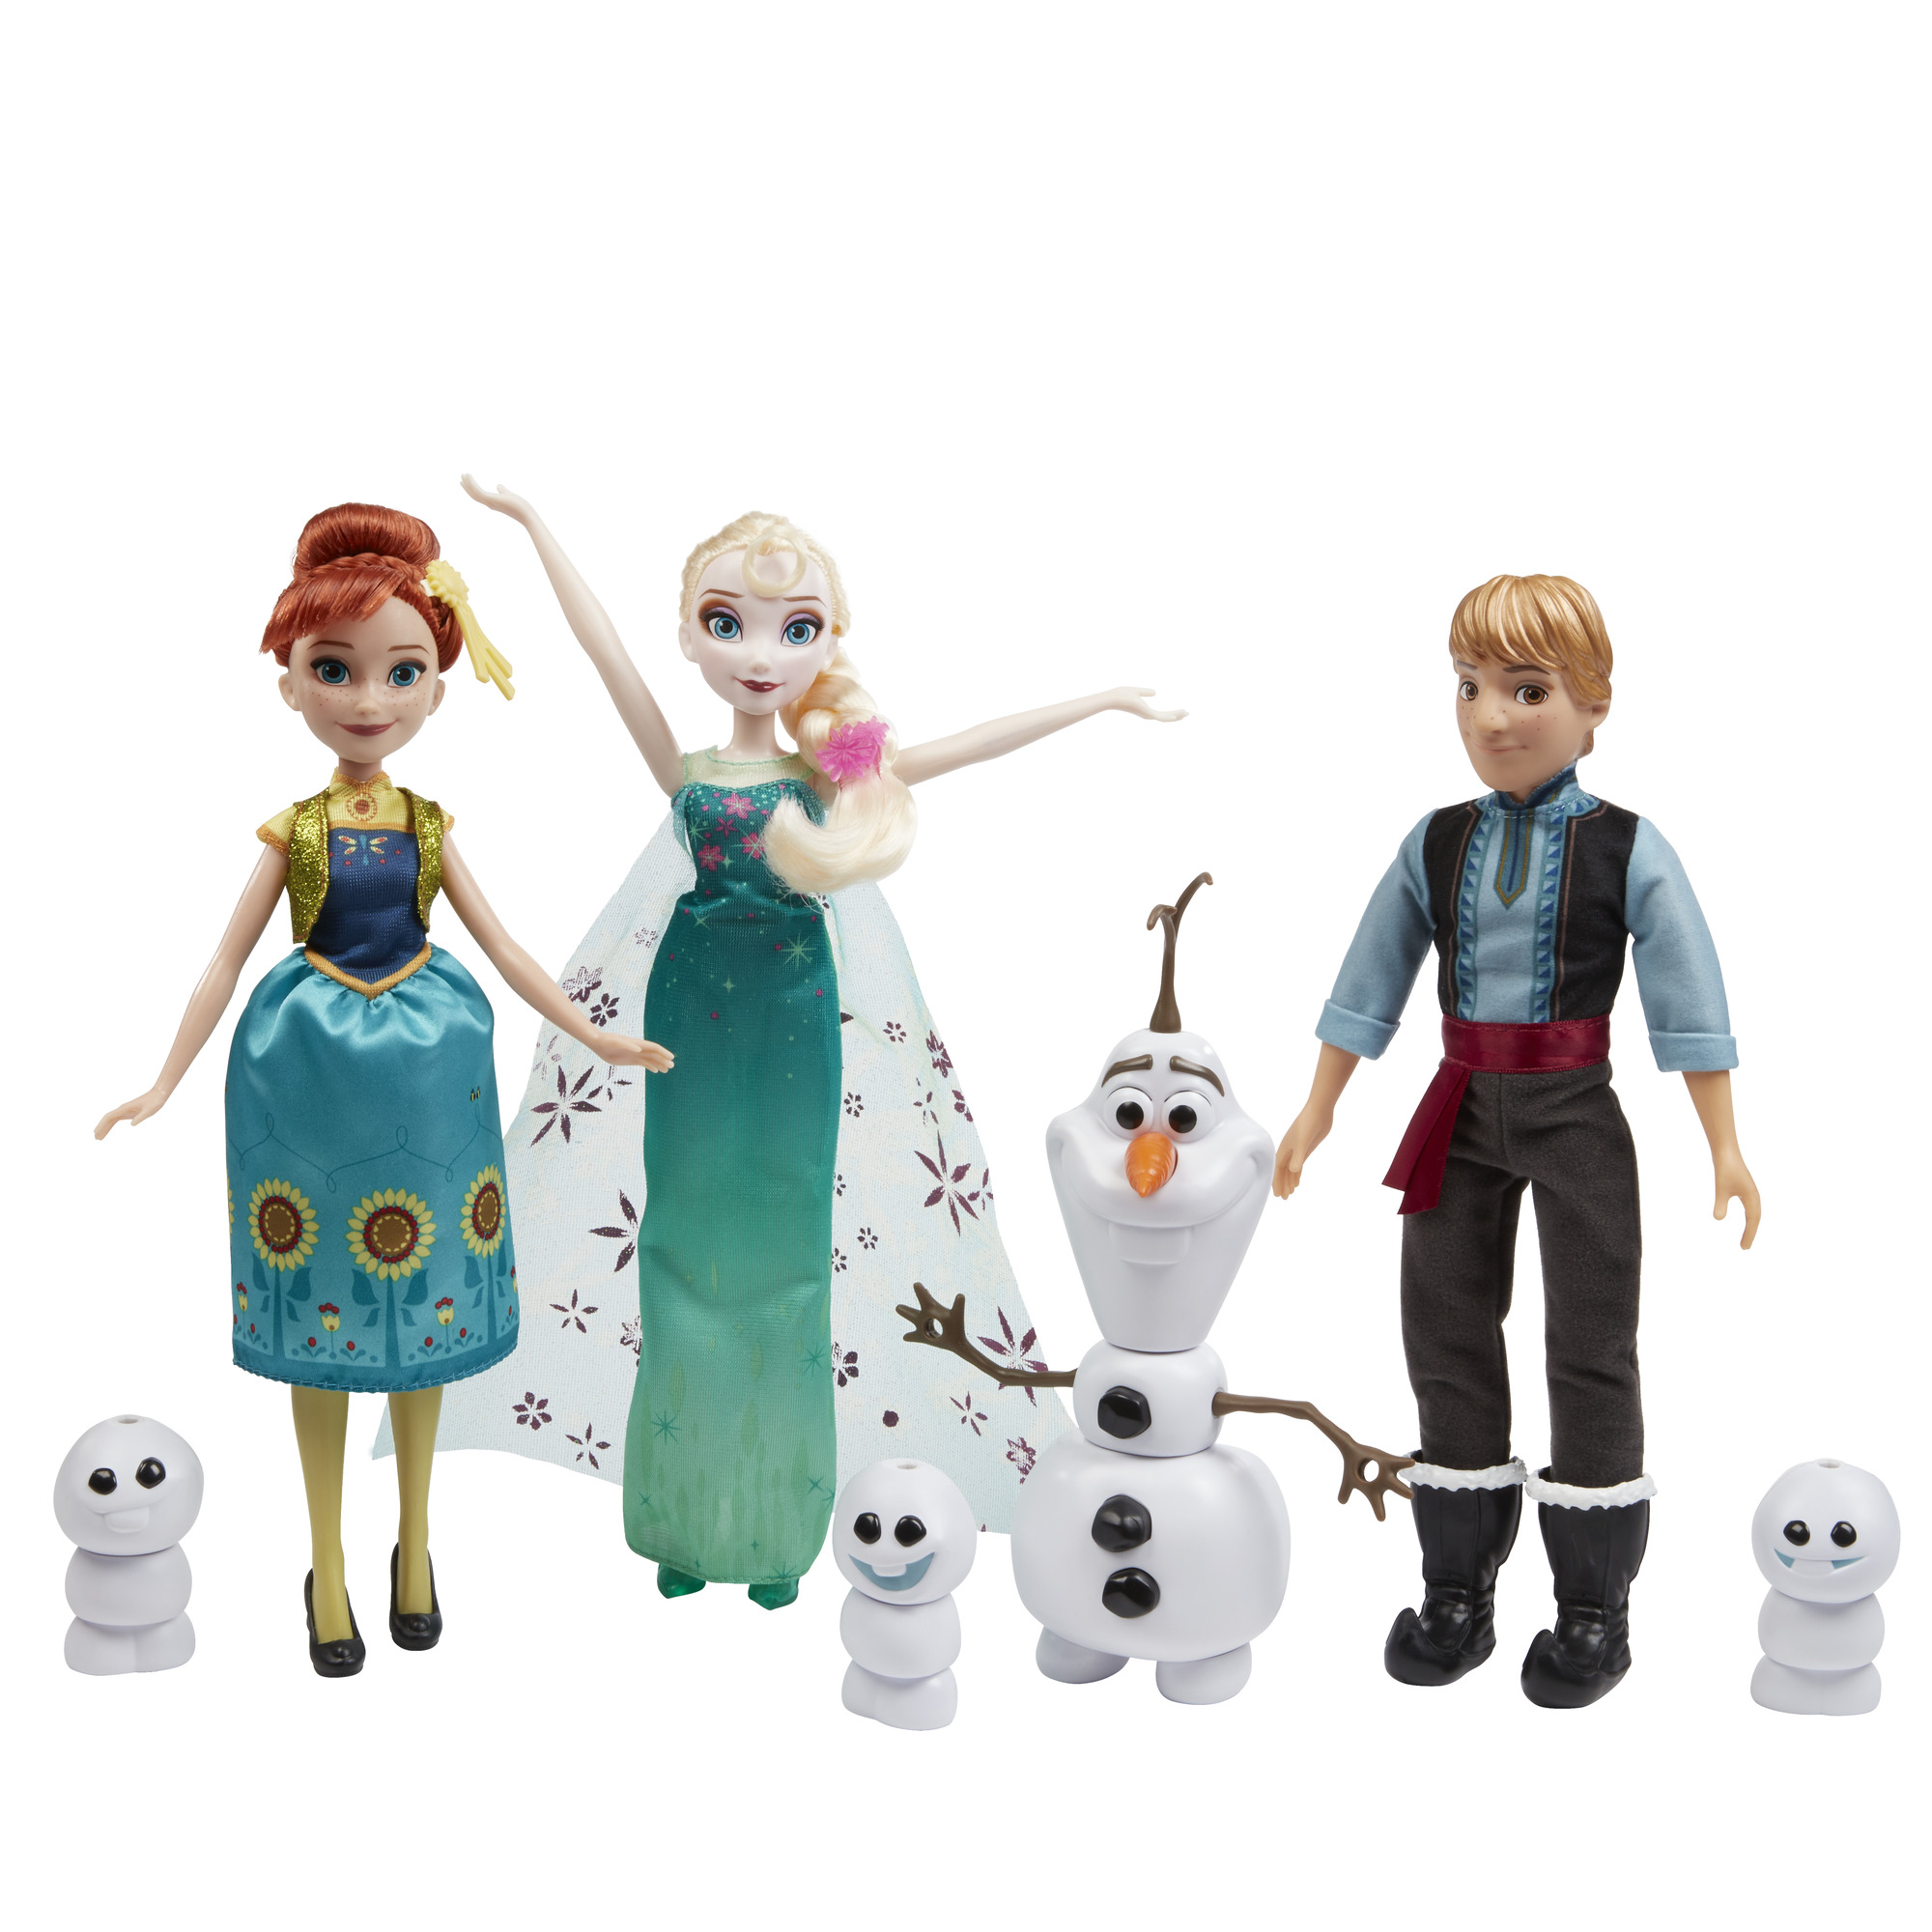 Hasbro Disney Frozen Fever Friends Gift Set Ages 3+ by Hasbro